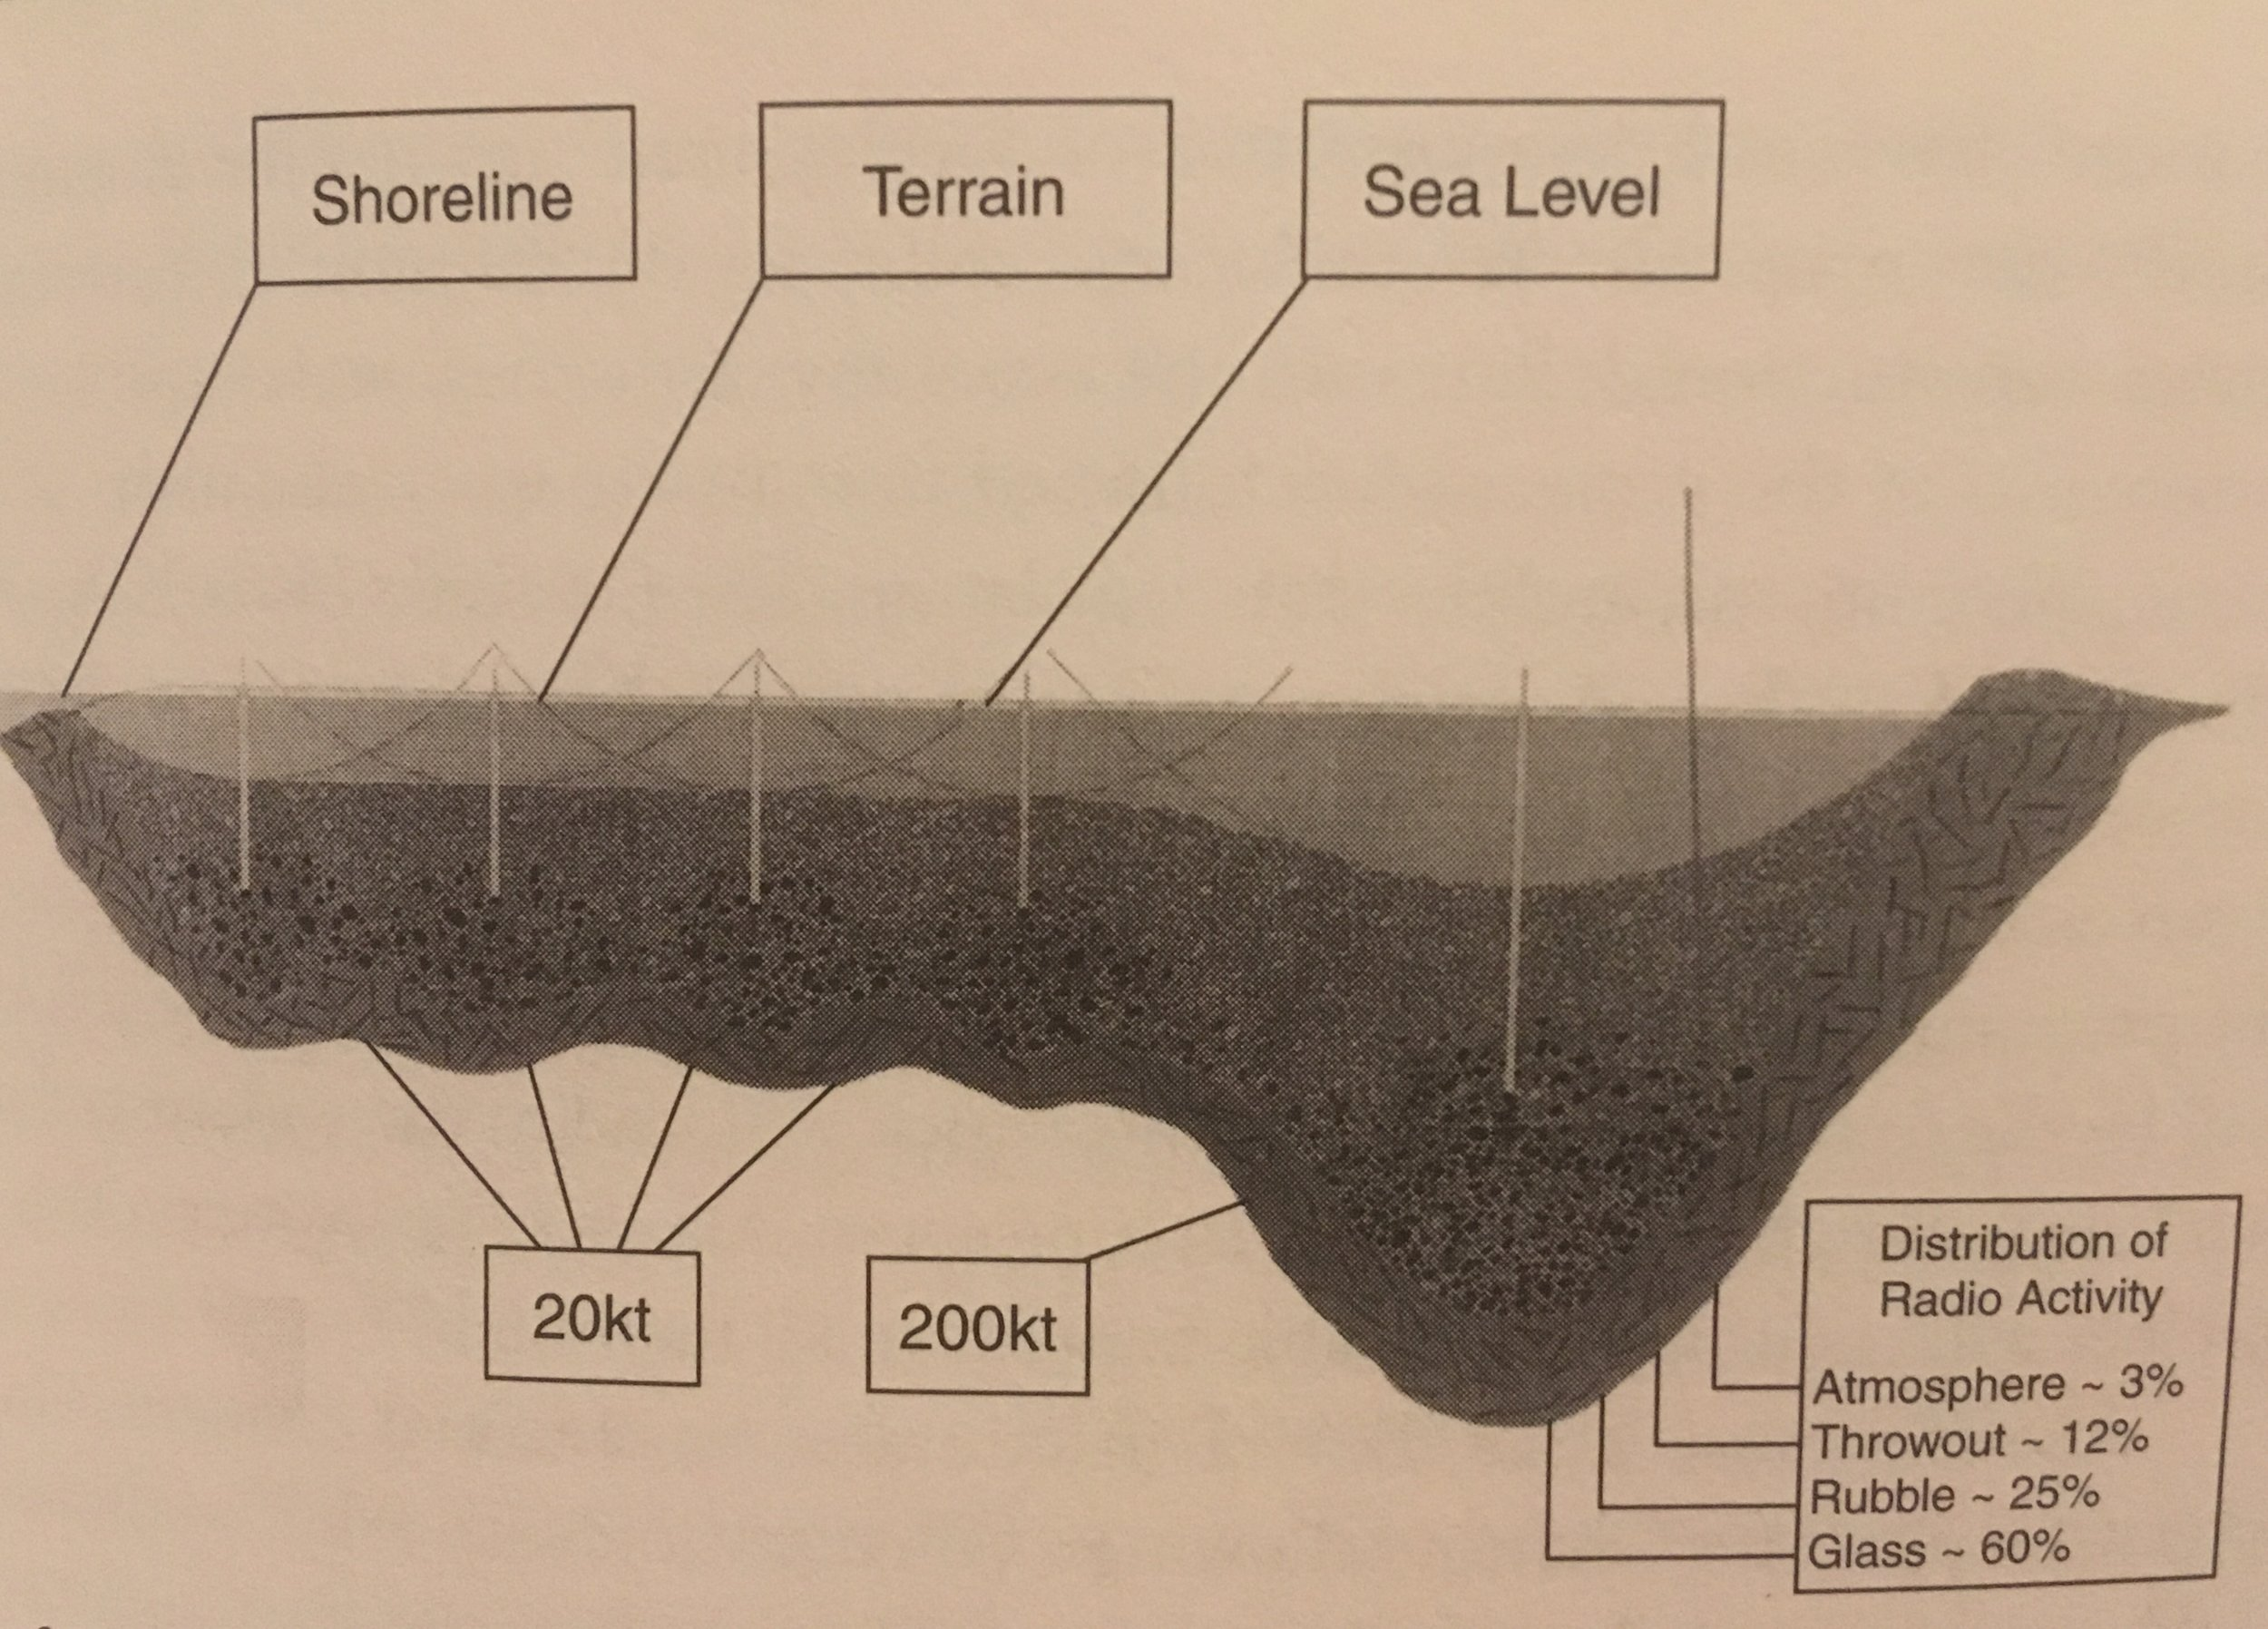 Figure 3. Schematic design for the harbor constructed from Project Chariot. Original image adapted from Lawrence Livermore National Labs and the AEC, reproduced in Kirsch (2005), the excellent book from which this schematic was scanned.